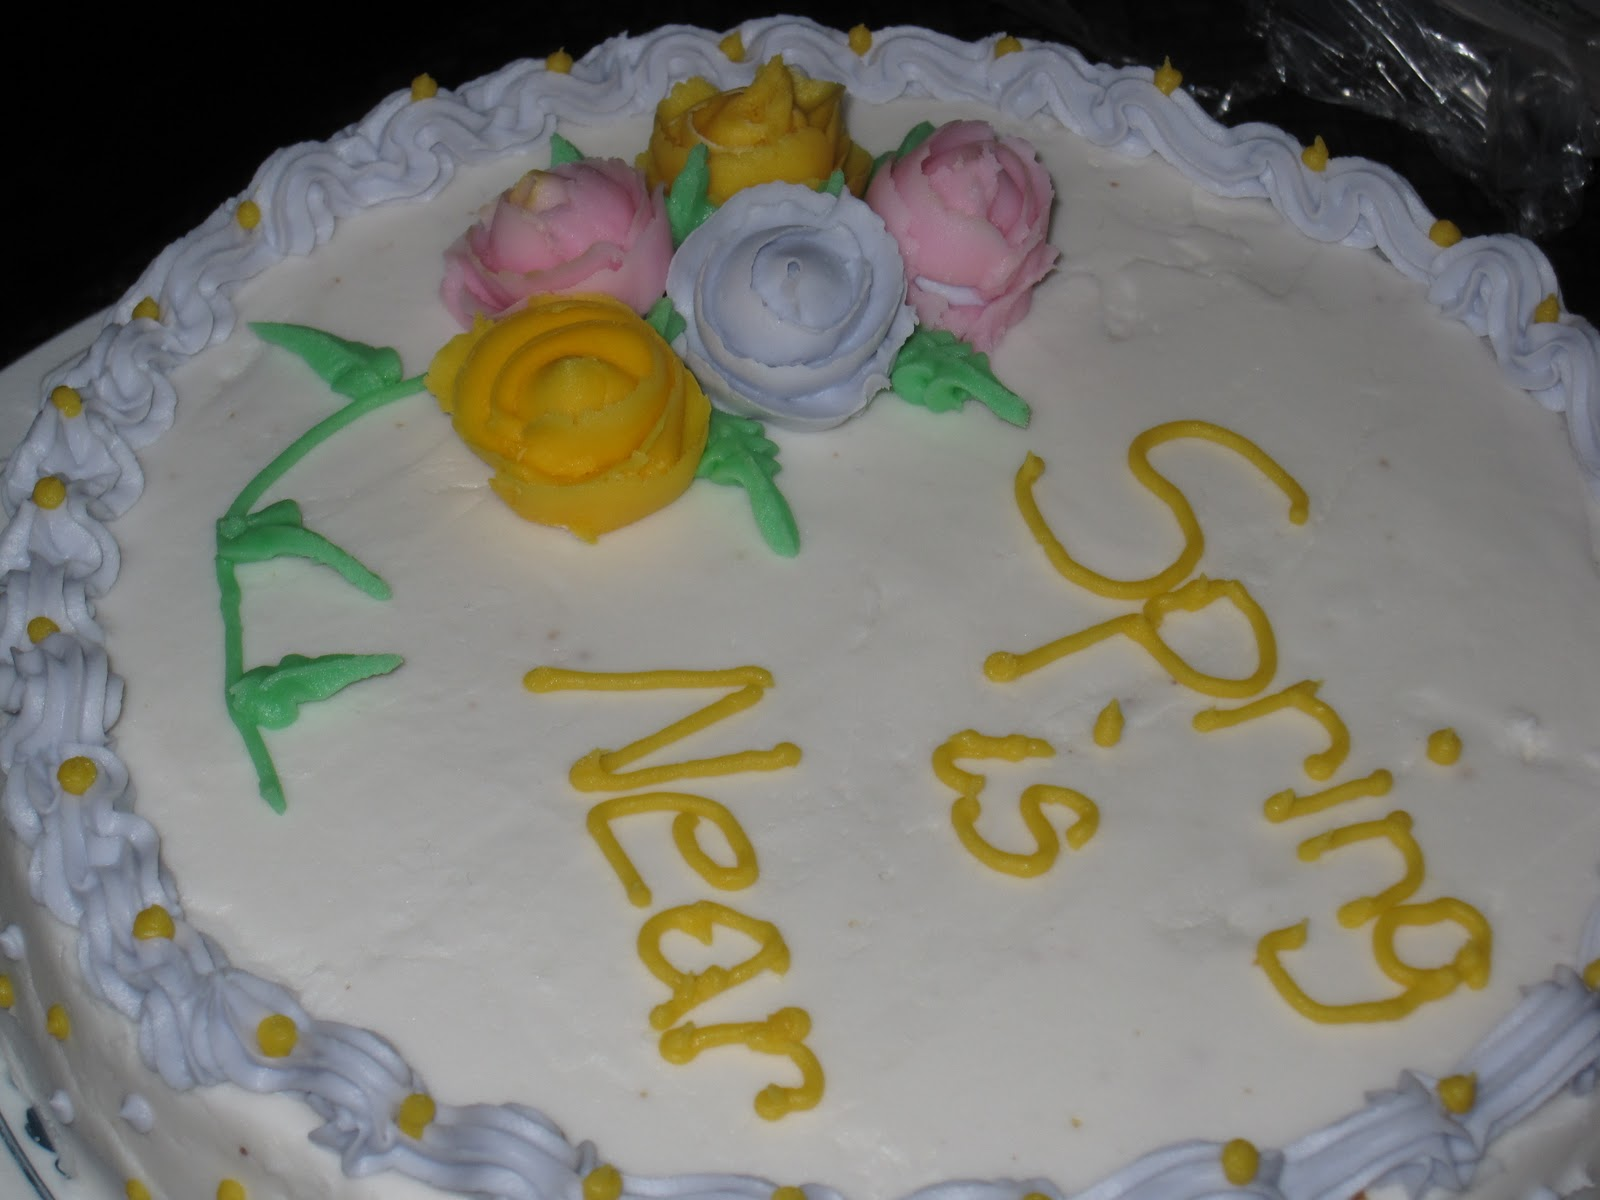 Michaels Cake Decorating Class Times : Michael s Basic Cake Decorating Class - Day 4 - She Bakes Here